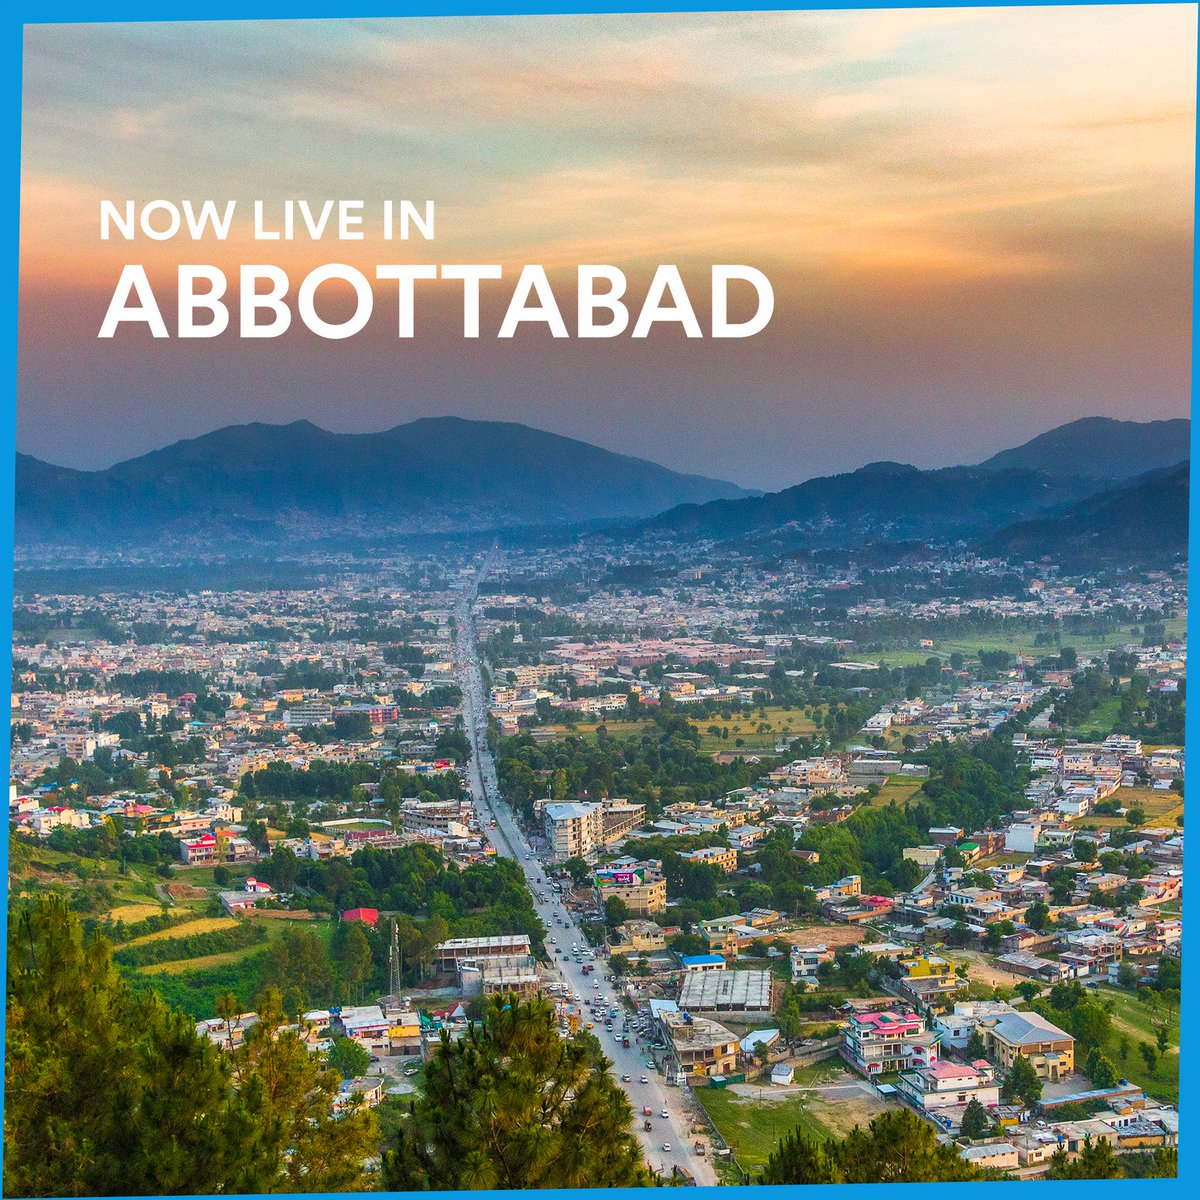 Careem Pakistan On Twitter Has Launched In Abbottabad Use Promo ABBOTTABAD And Travel For Only Rs 100 TC Apply